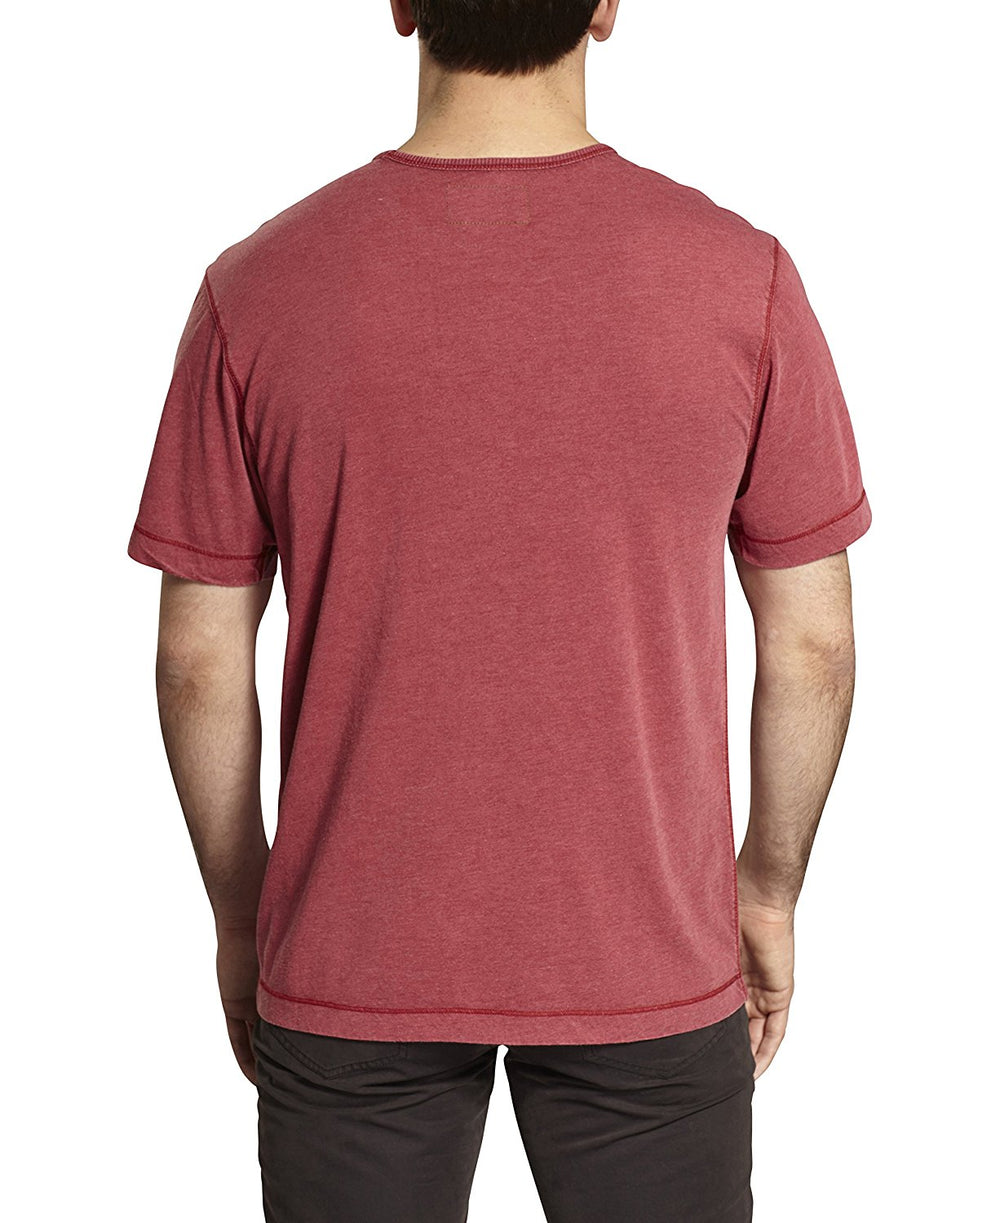 TADD by Thaddeus BEAU Short Sleeve Solid Crew Neck T-Shirt